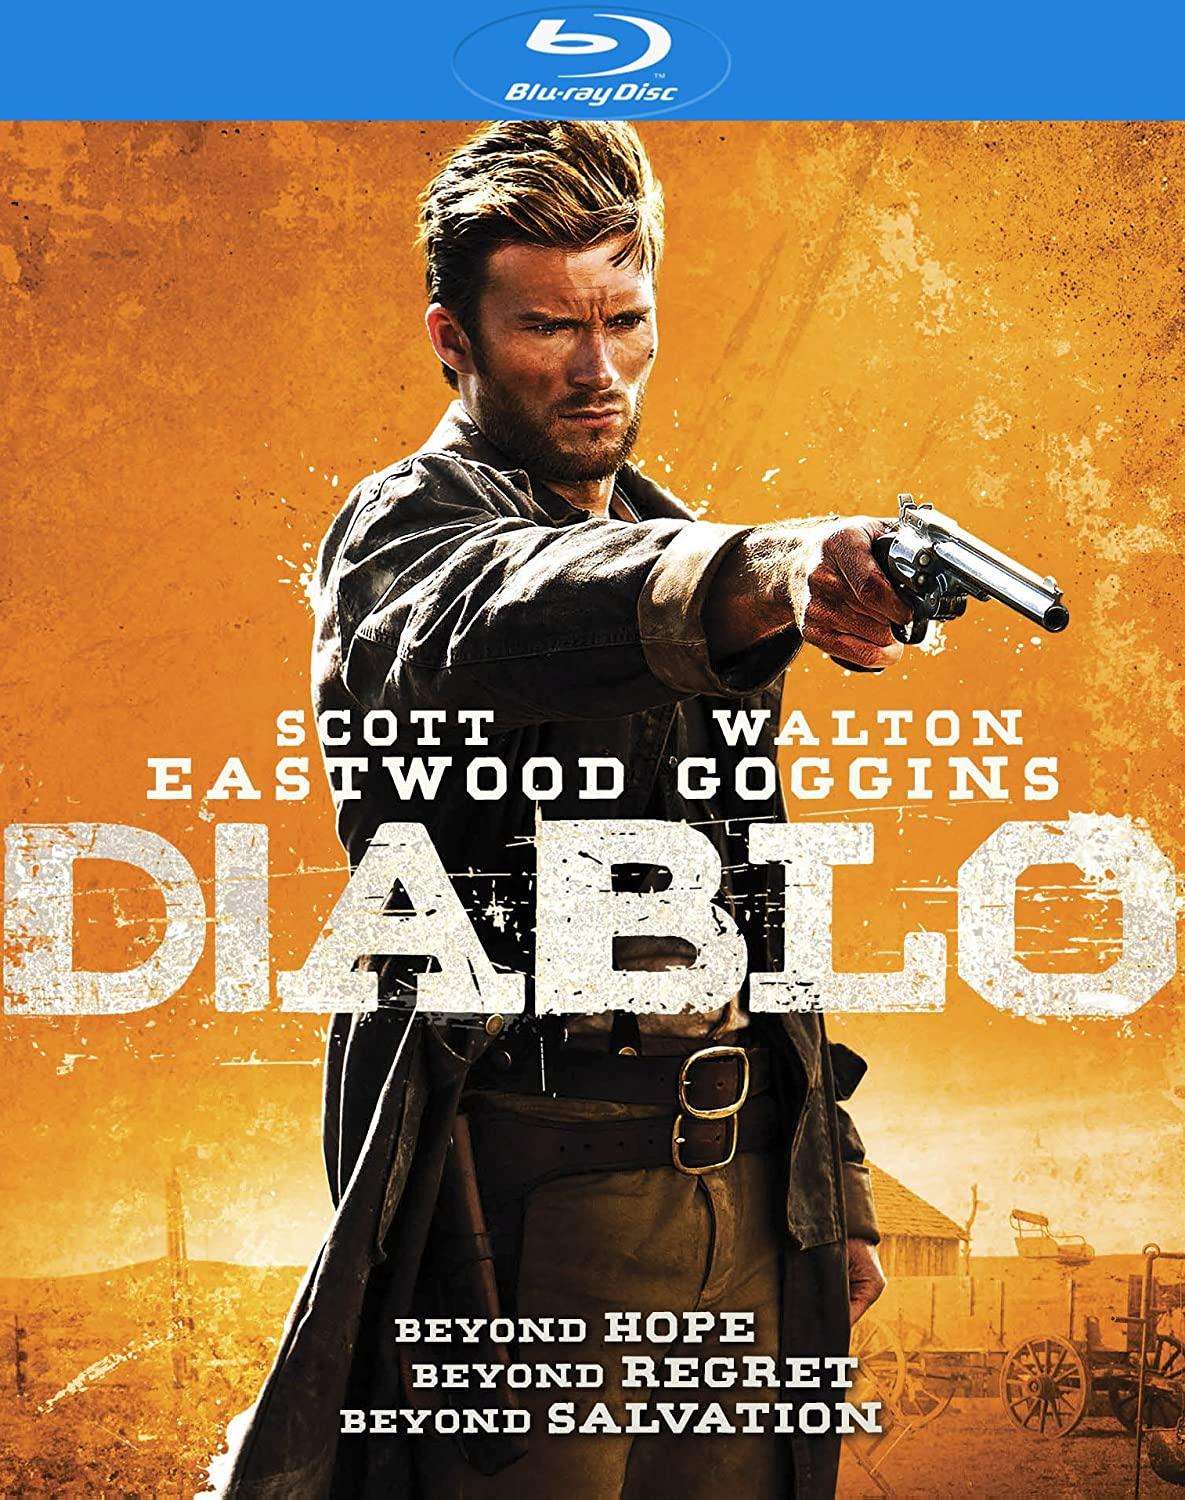 Amazon Diablo [Blu ray] Scott Eastwood Danny Glover Walter